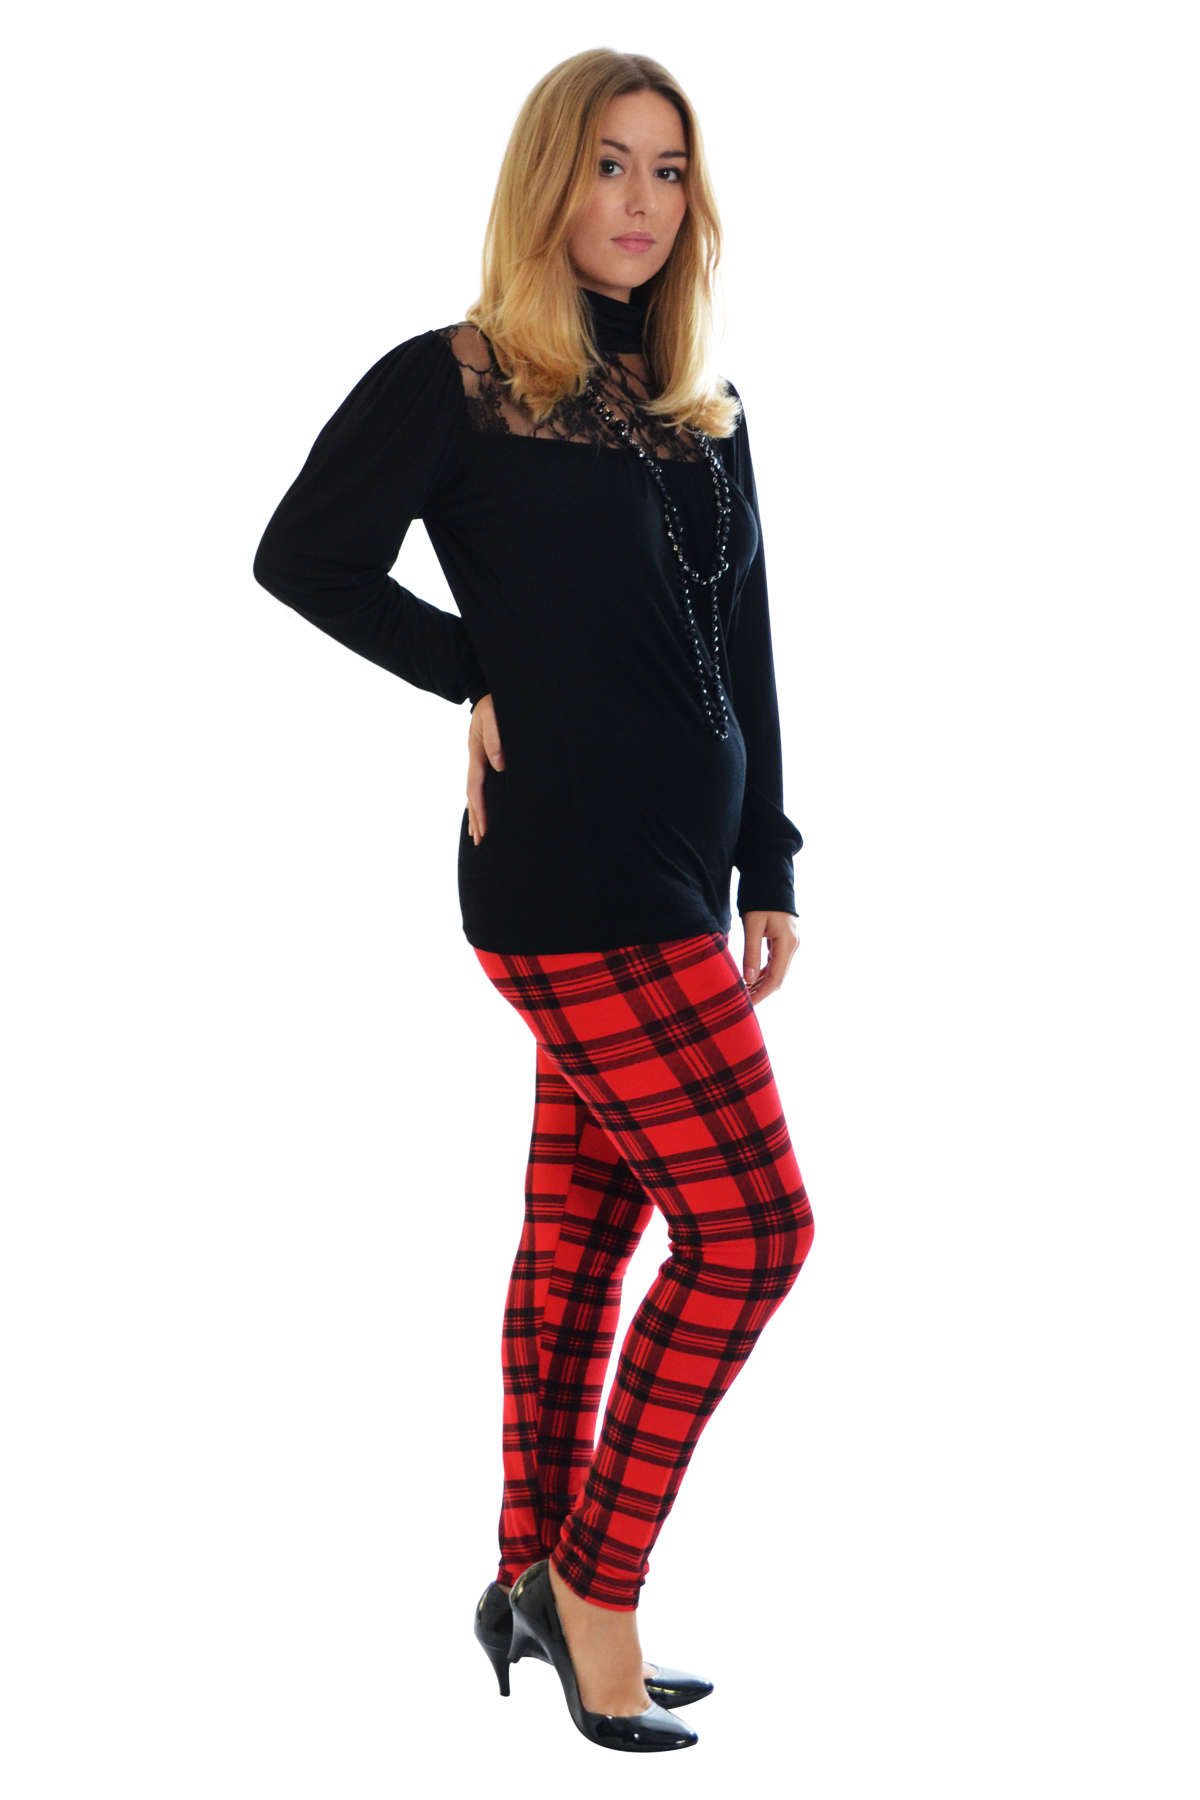 Tights for Women - Relaxed Solids To Daring Splash Colors. Dress up your life with a rainbow of colors wearing shades of colorful tights from We Love Colors. LAST CHANCE - Plus Sized Tights - Black Only; Lurex Glitter Tights; With over 16 styles, from solids to Splash Colors, We Love Colors has it all.